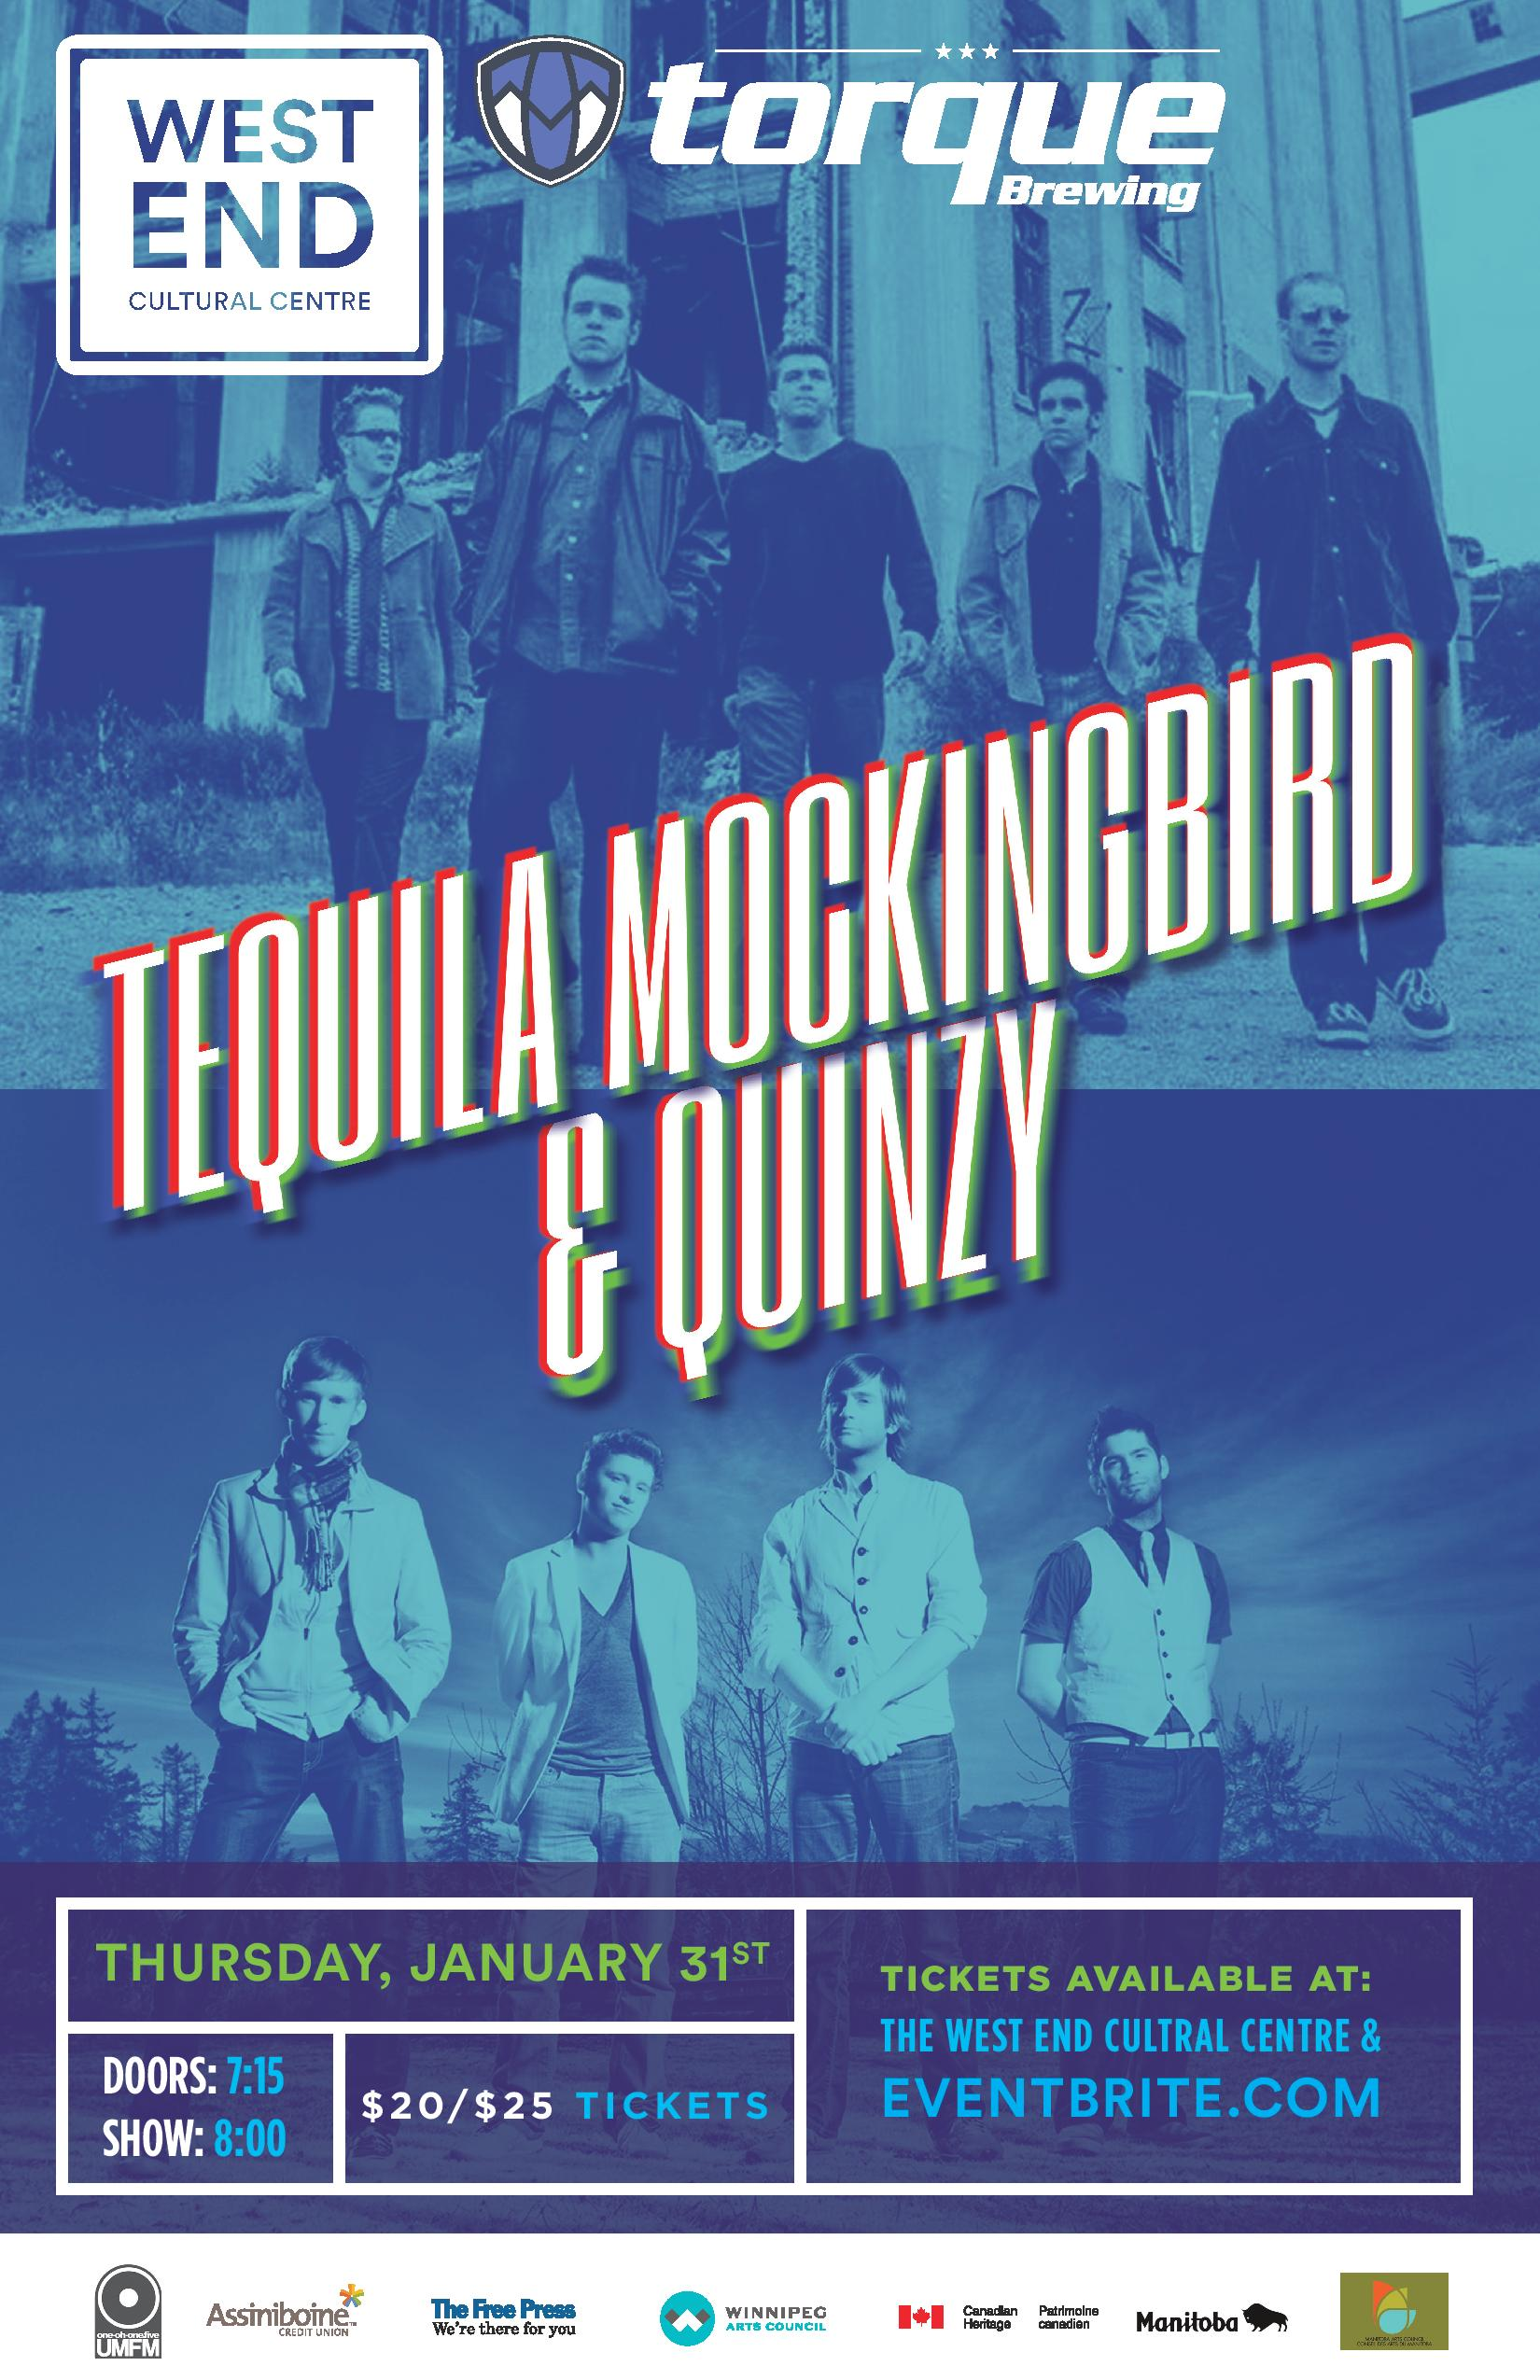 190131 TBT Tequila Mockingbird and Quinzy.jpg